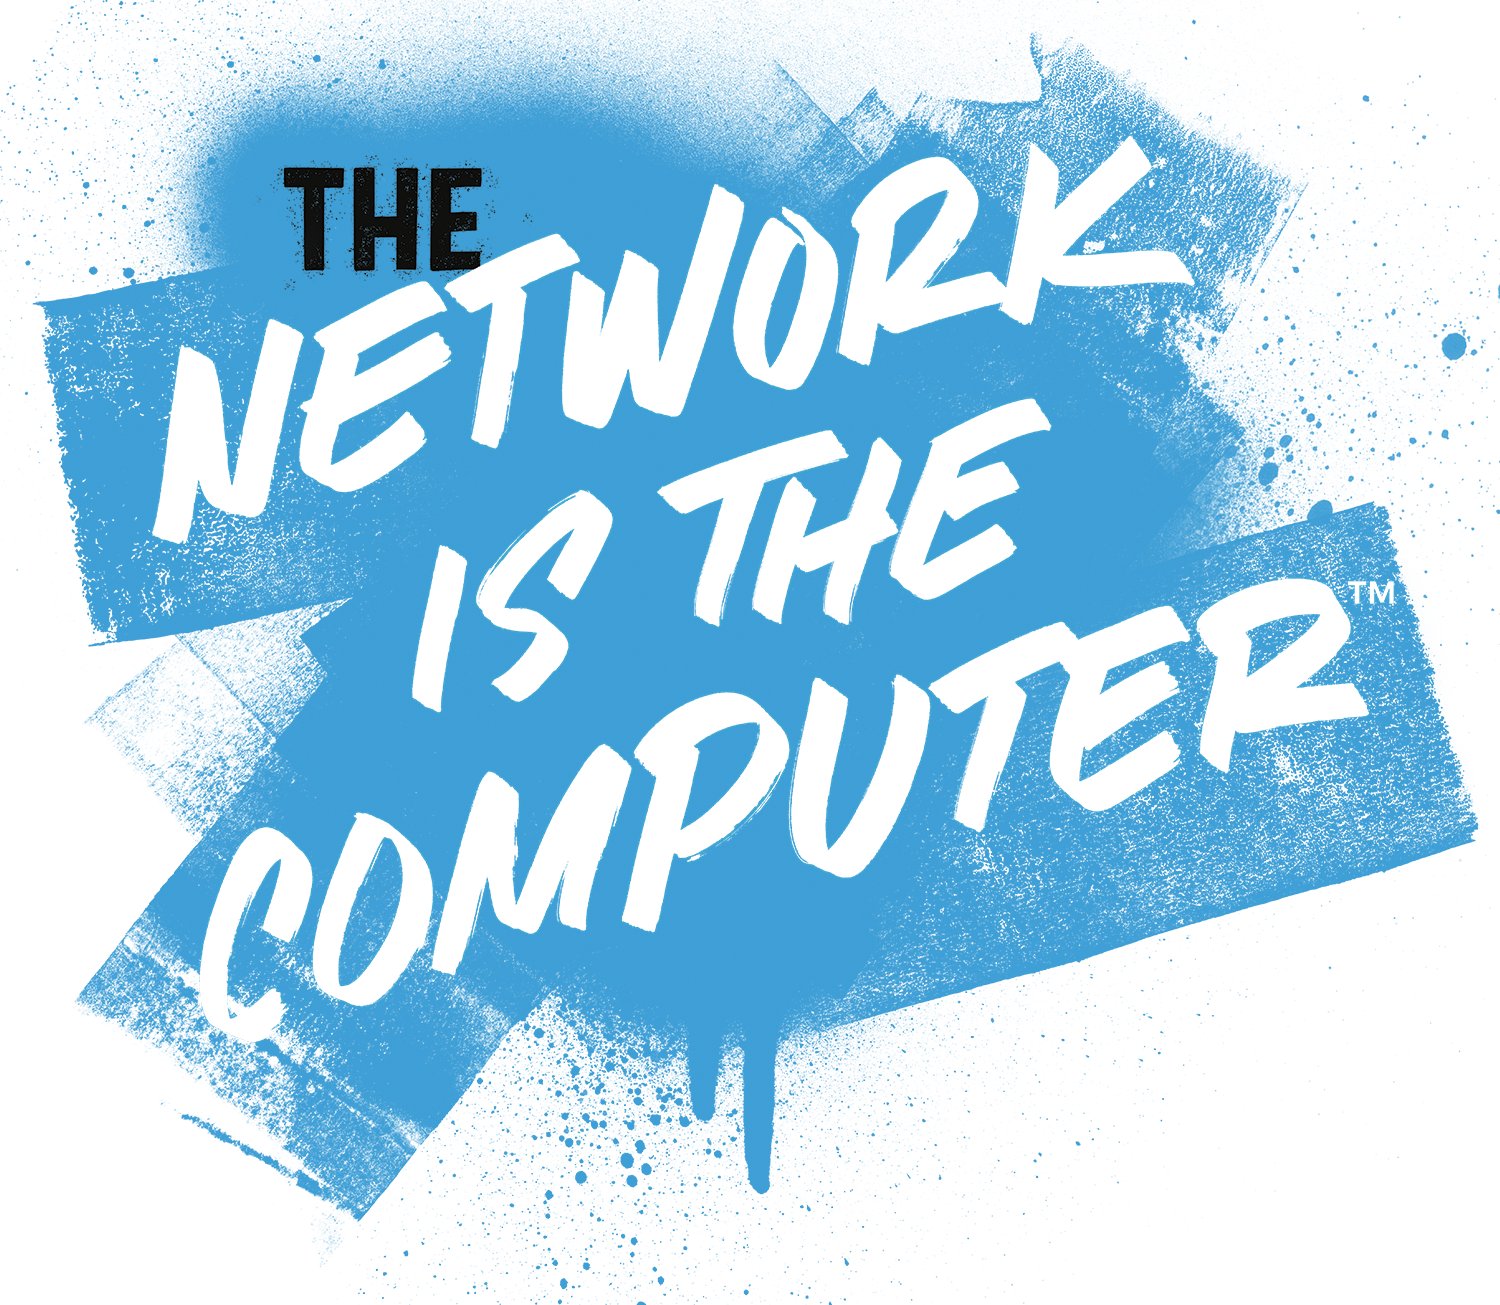 The Network is the Computer: A Conversation with Ray Rothrock